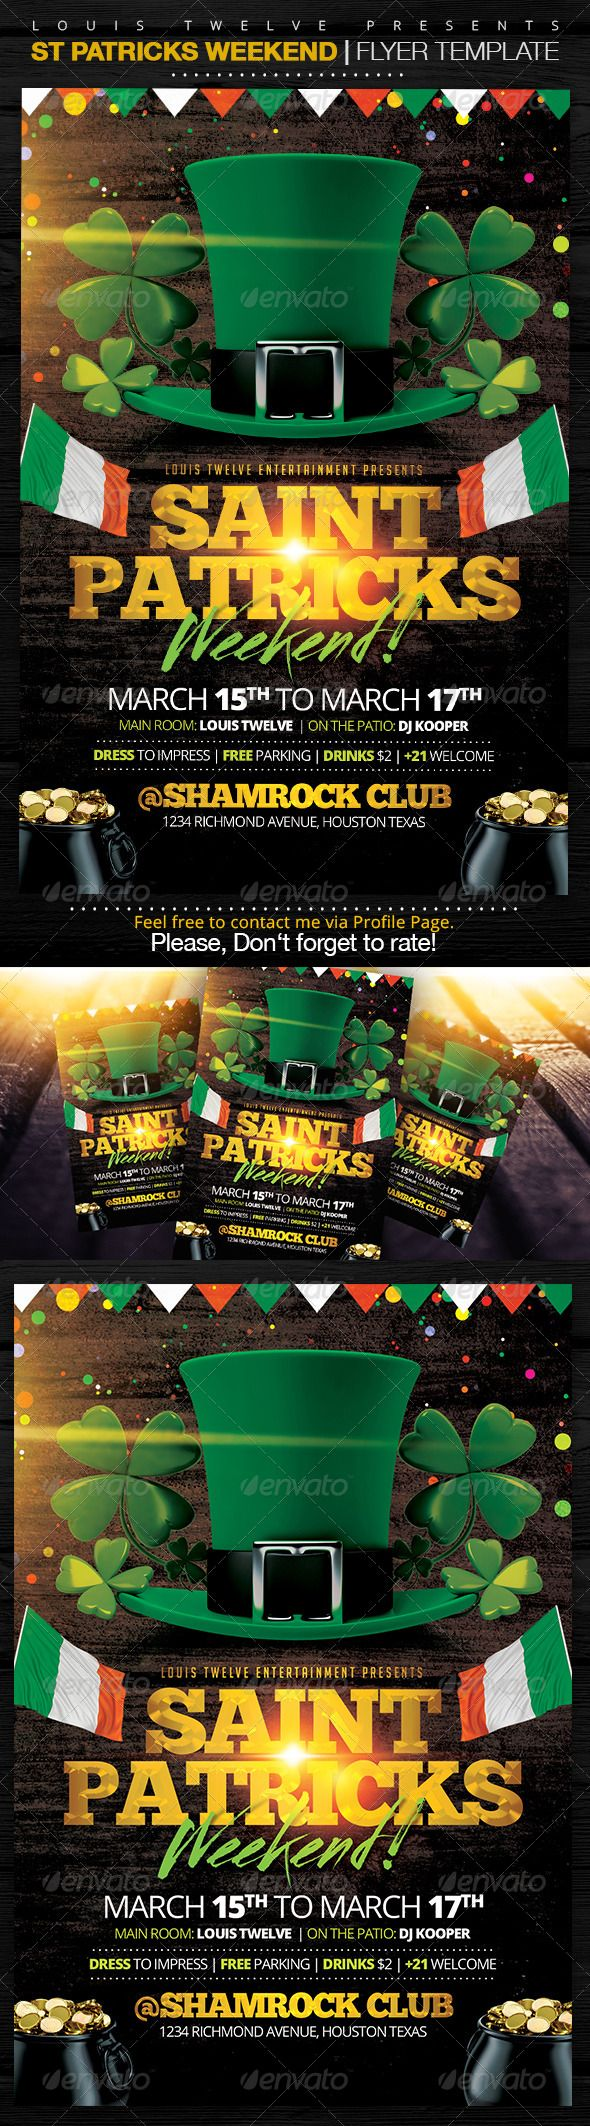 17 best images about flyers template saturday night st patricks weekend flyer template